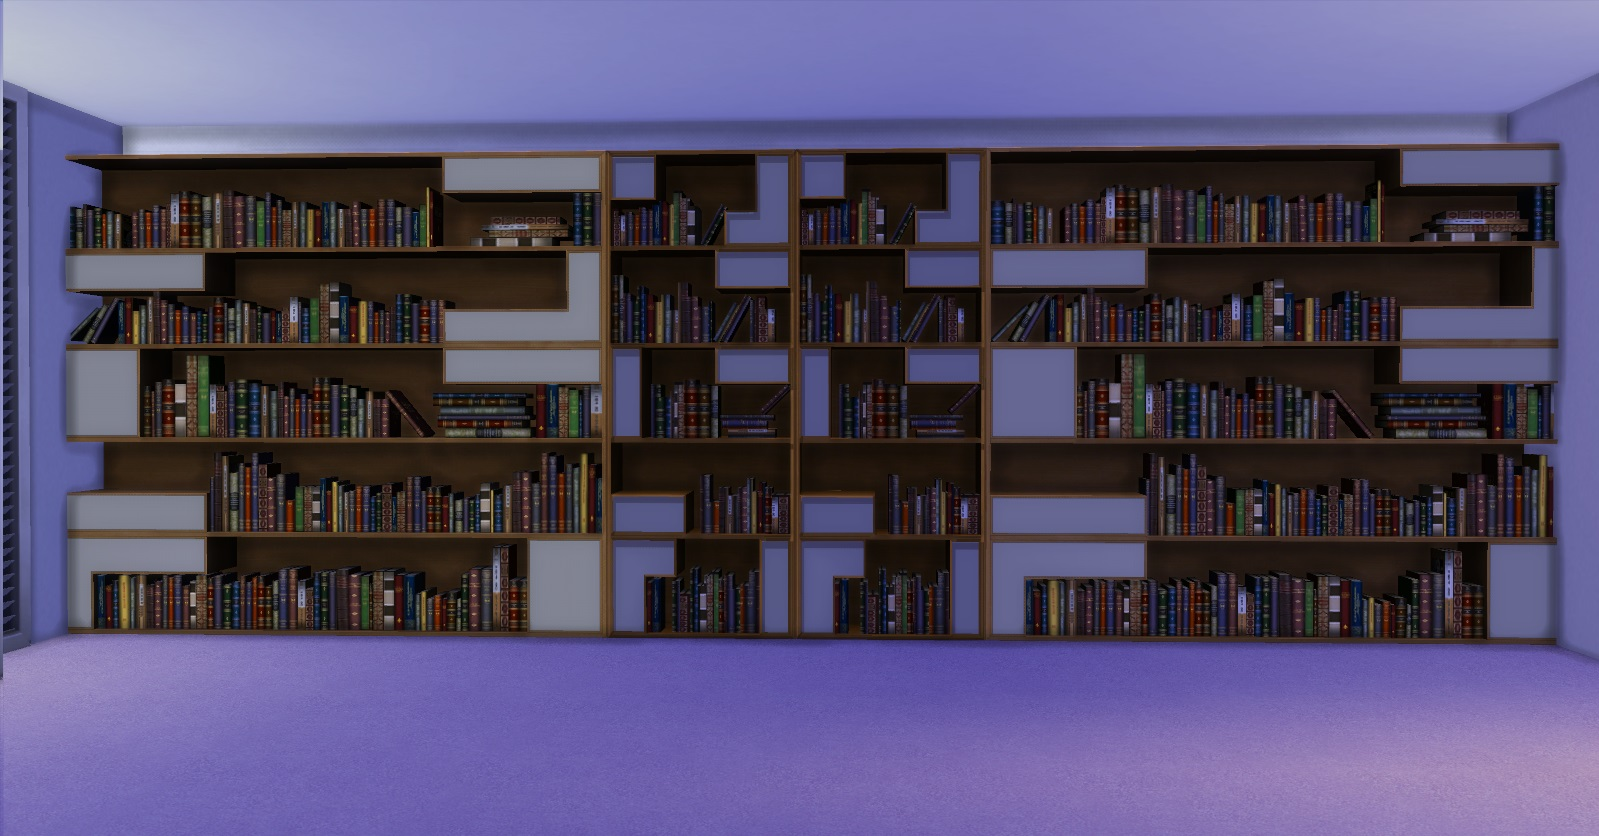 Poetic Bookshelf by AdonisPluto